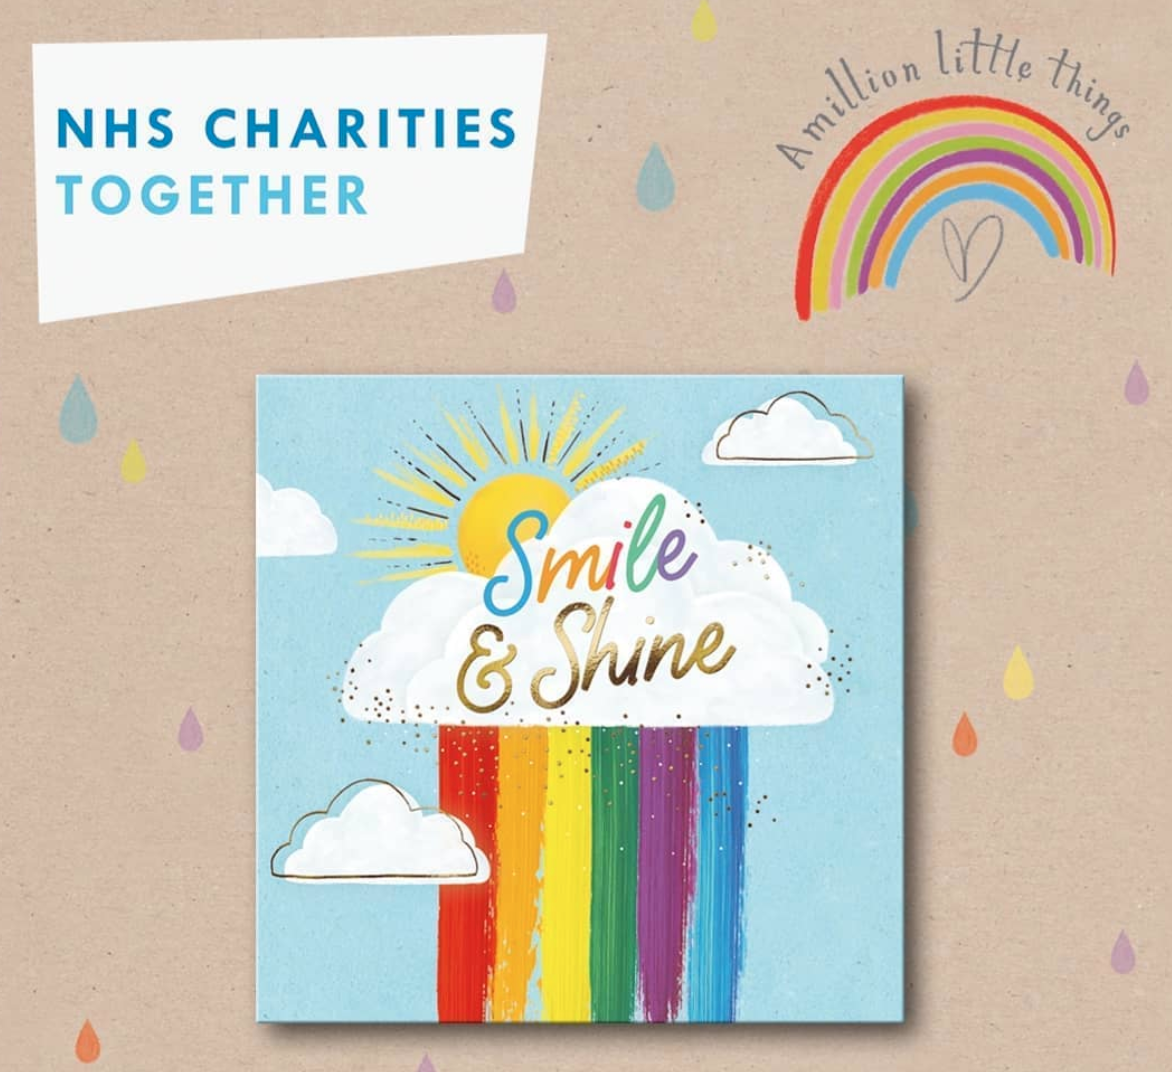 Above: GBCC's A Million Little Things collection, which raises money for the NHS Charities Together cause is one of the publisher's recent launches.